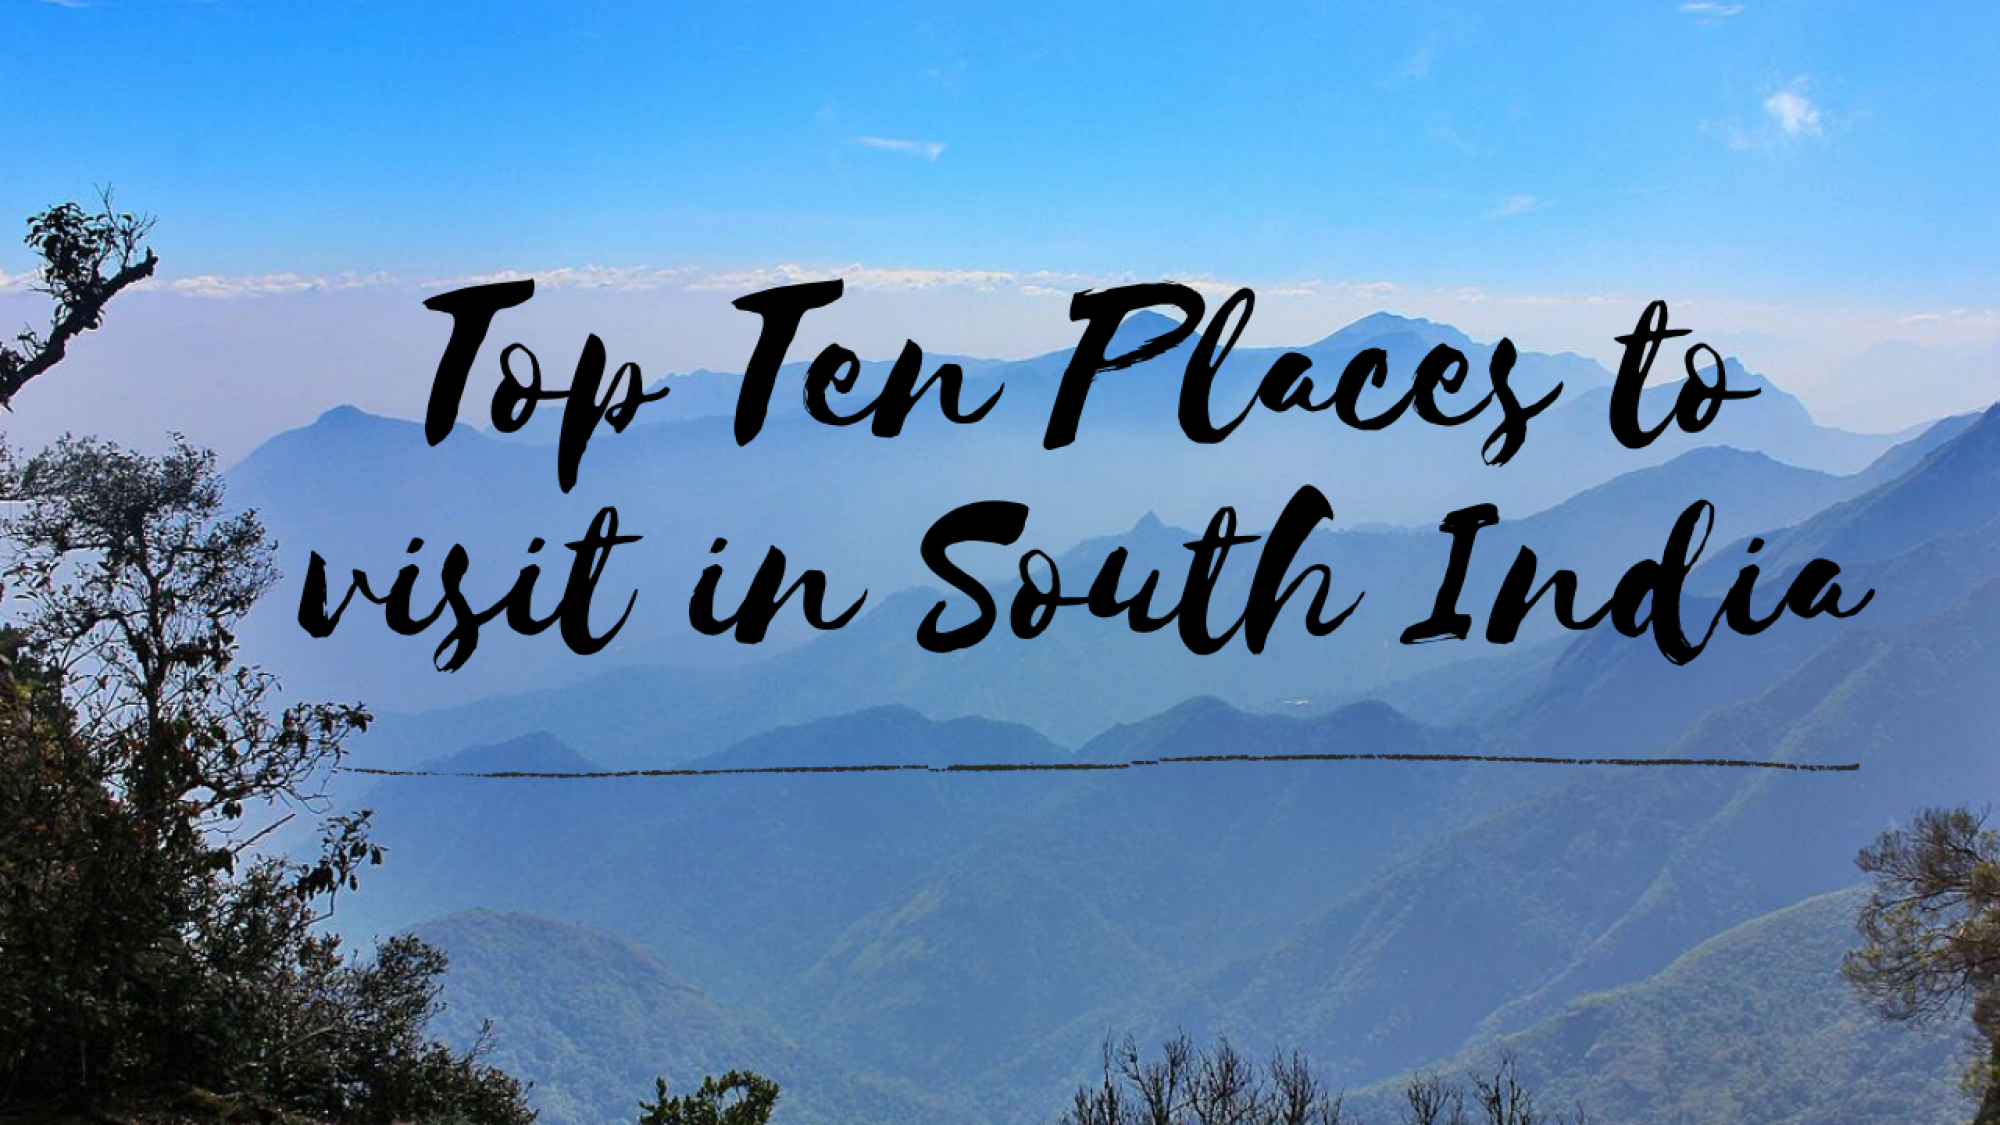 Top Ten Places to visit in South India